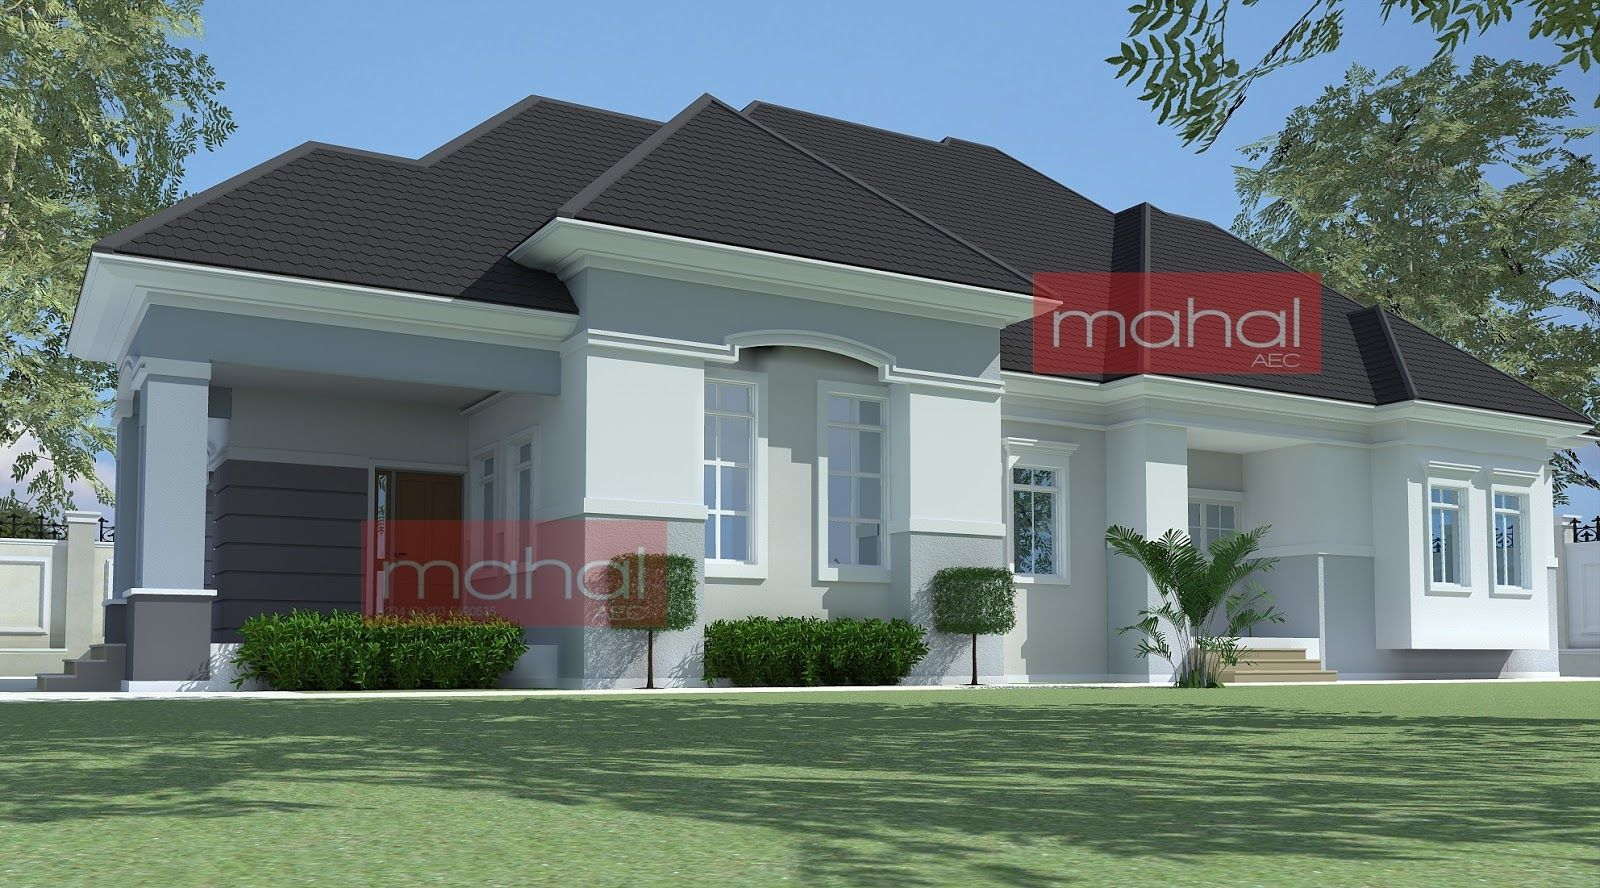 4 bedroom bungalow plan in nigeria 4 bedroom bungalow for Bangalo design